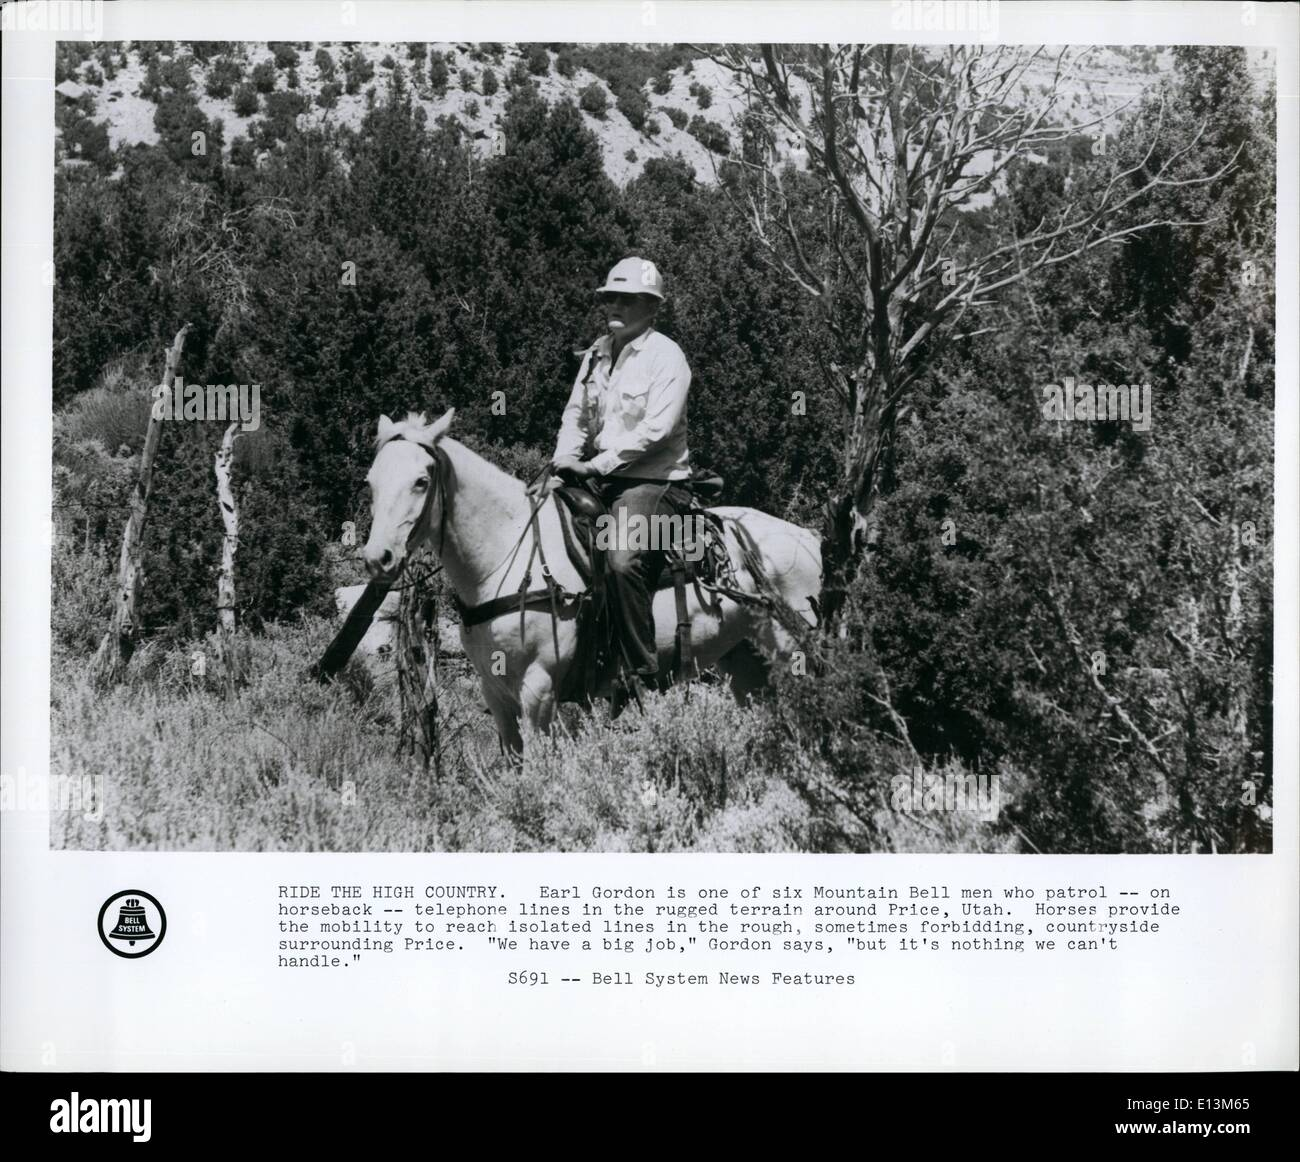 Mar. 22, 2012 - Ride the High Country. Earl Gordon is one of six Mountain Bell men who patrol on horseback , telephone - Stock Image